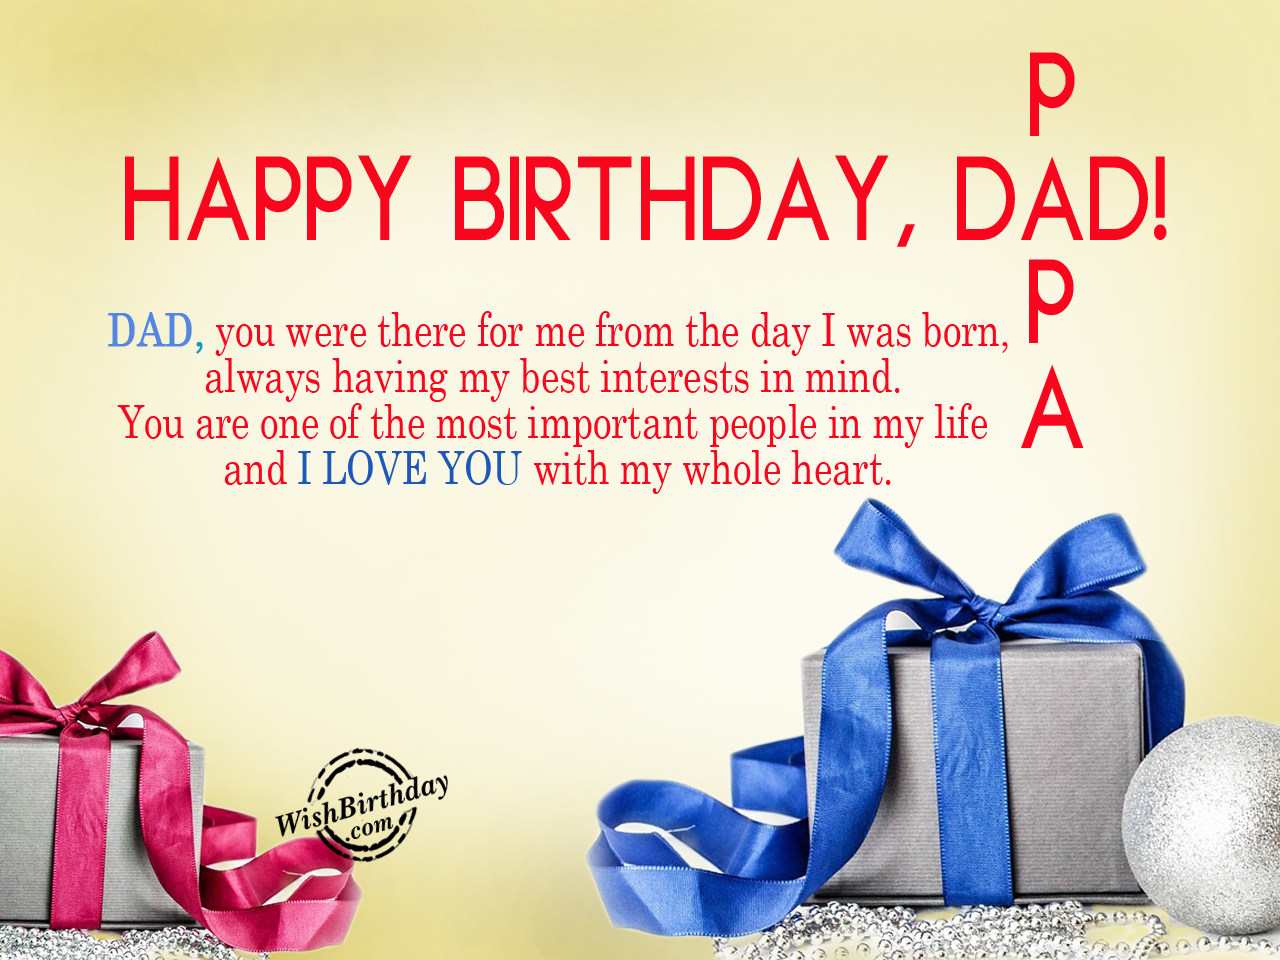 Birthday wishes for father birthday images pictures for Good url ideas